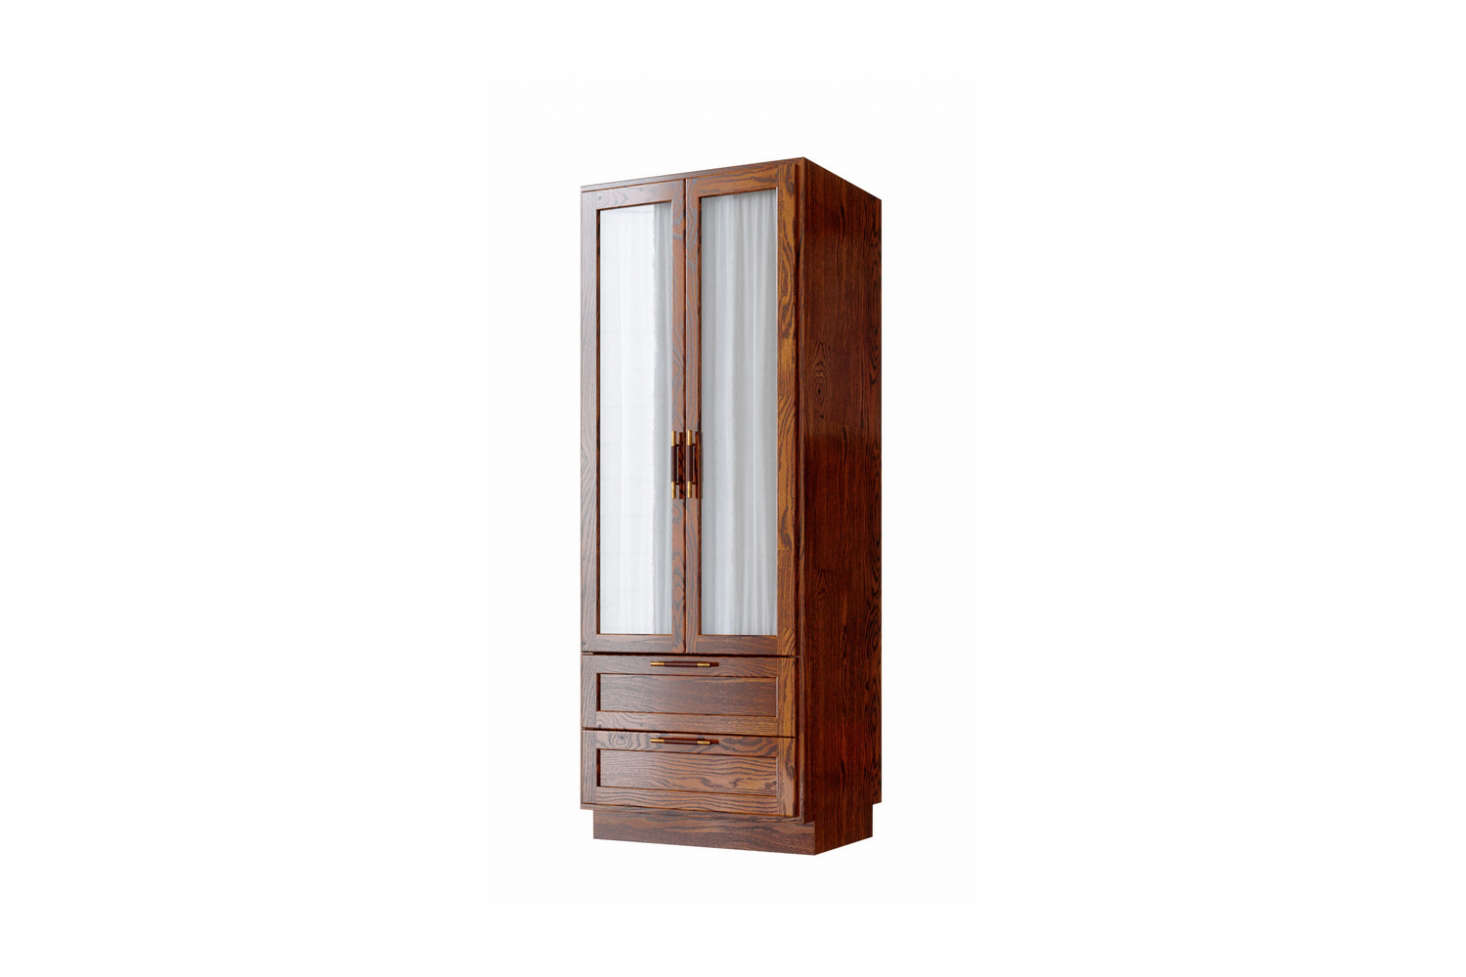 TheLind & Almond A Wardrobe for Sanders is made of European oak or chestnut. In the hotel, the designers lined the wardrobe with Kvadrat fabric.